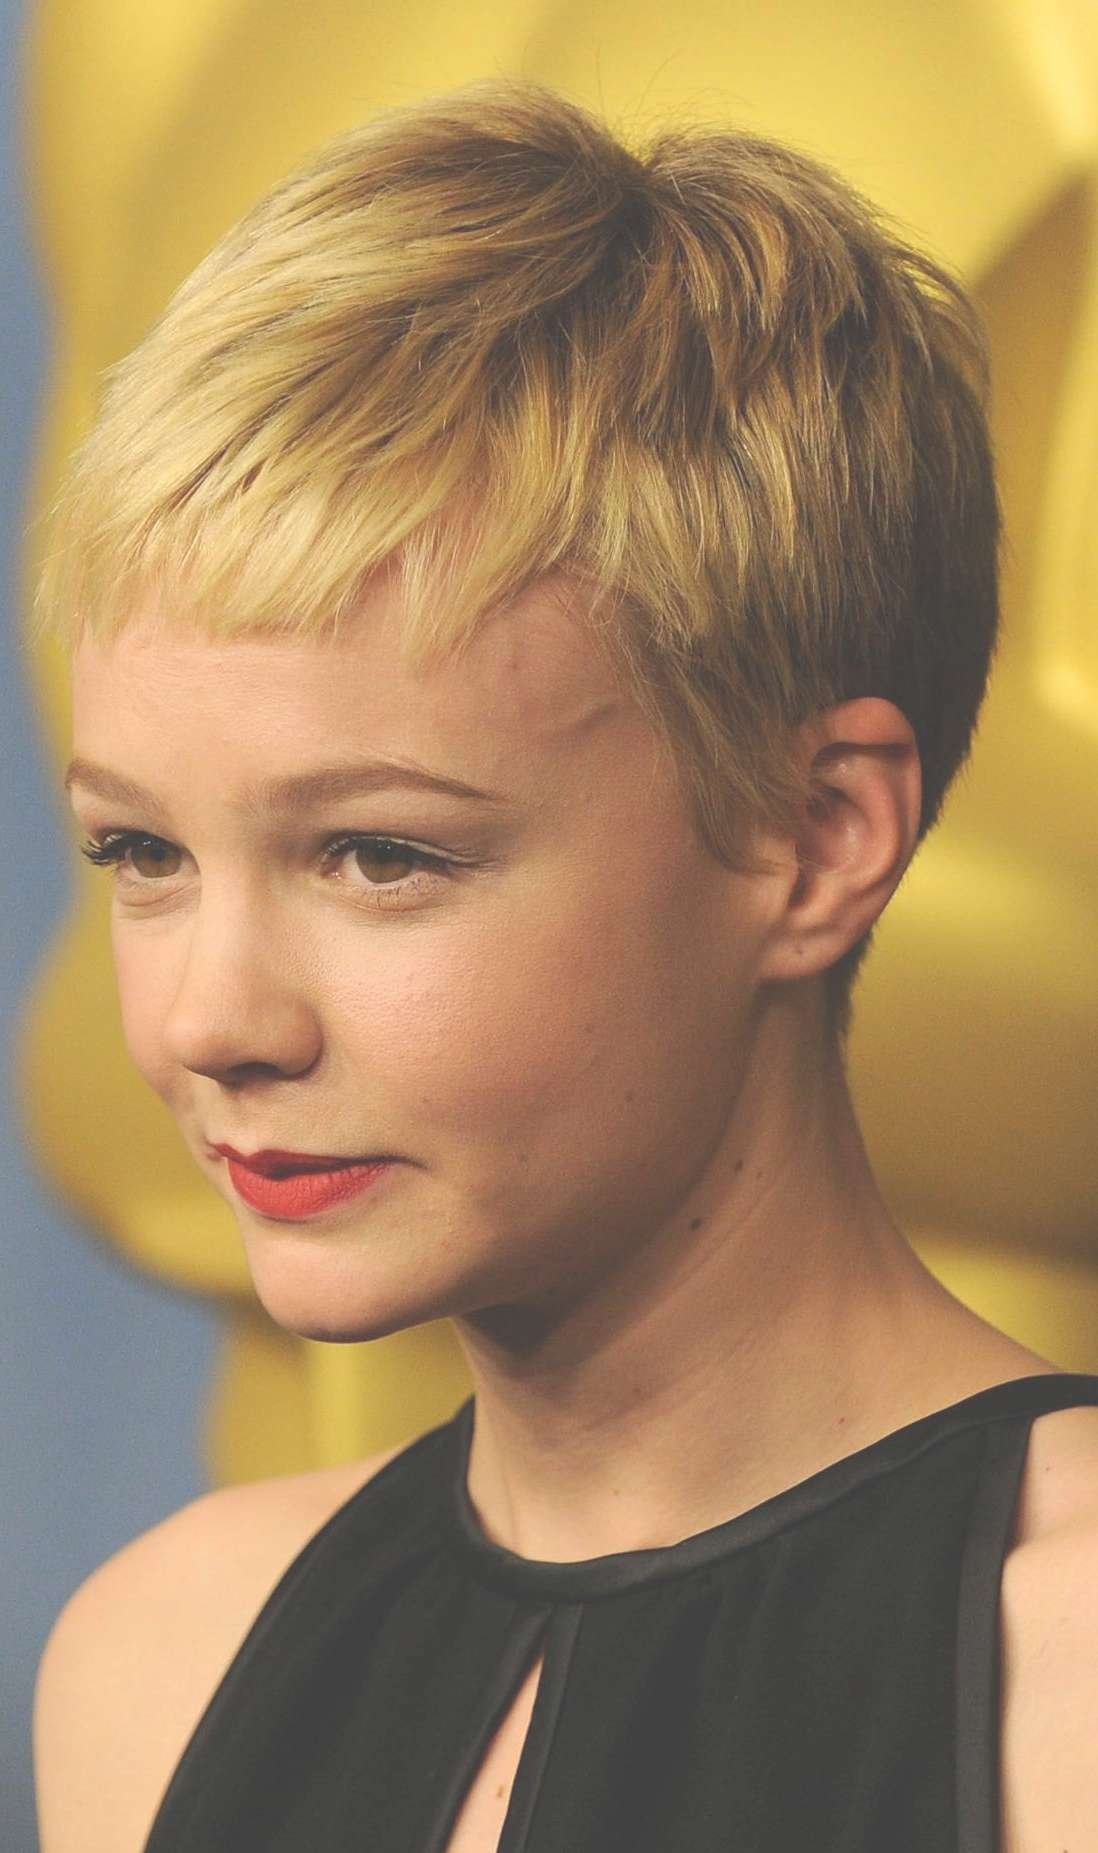 Short Pixie Hairstyles – Hairstyle For Women & Man Intended For Current Pixie Hairstyles (View 5 of 16)